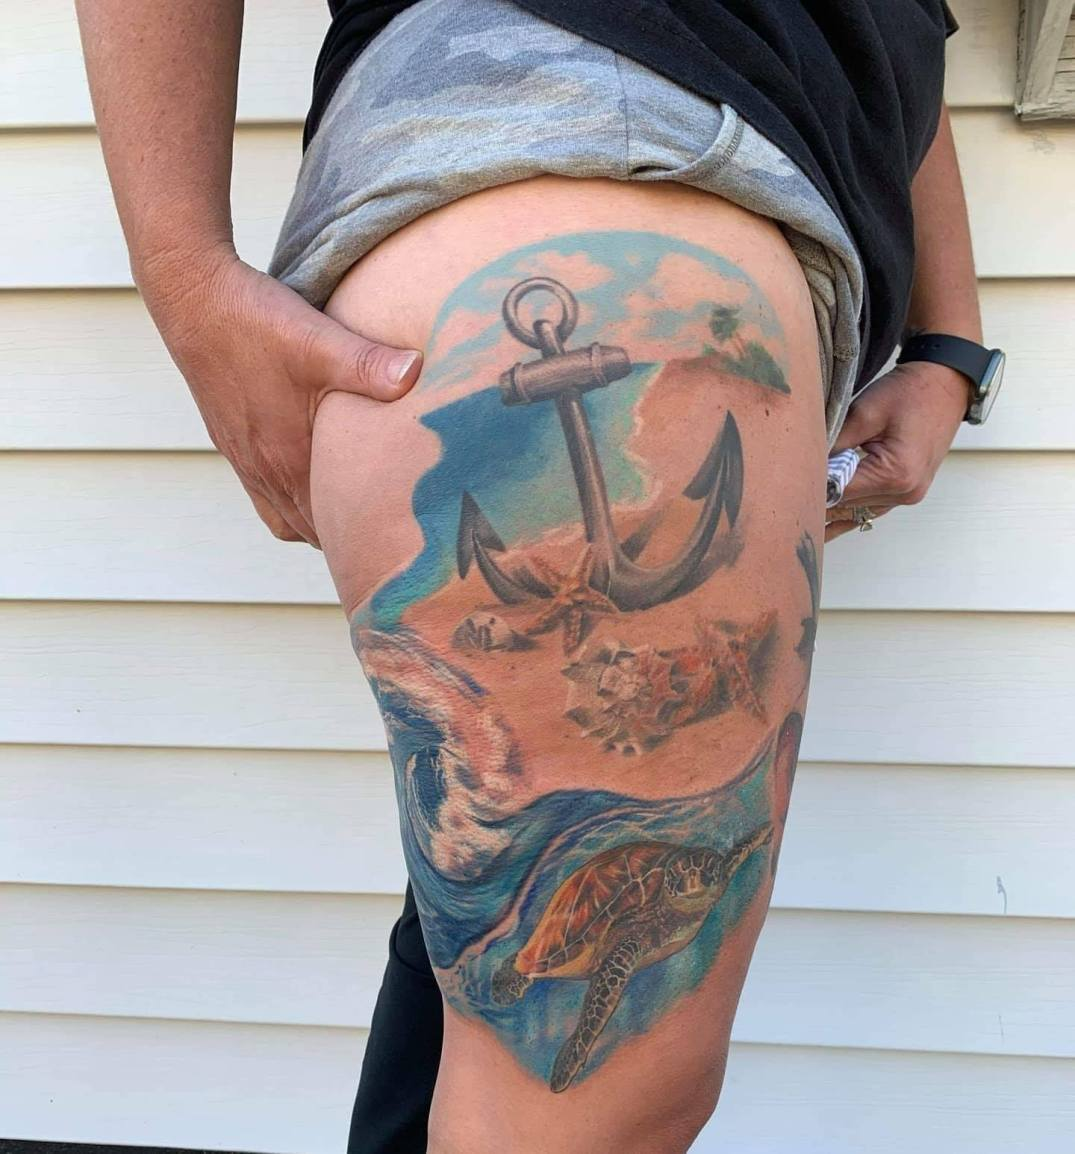 Beach by Chico Lou's Fine Tattoos studio in Athens Georgia GA. Artist - Veronica Hahn